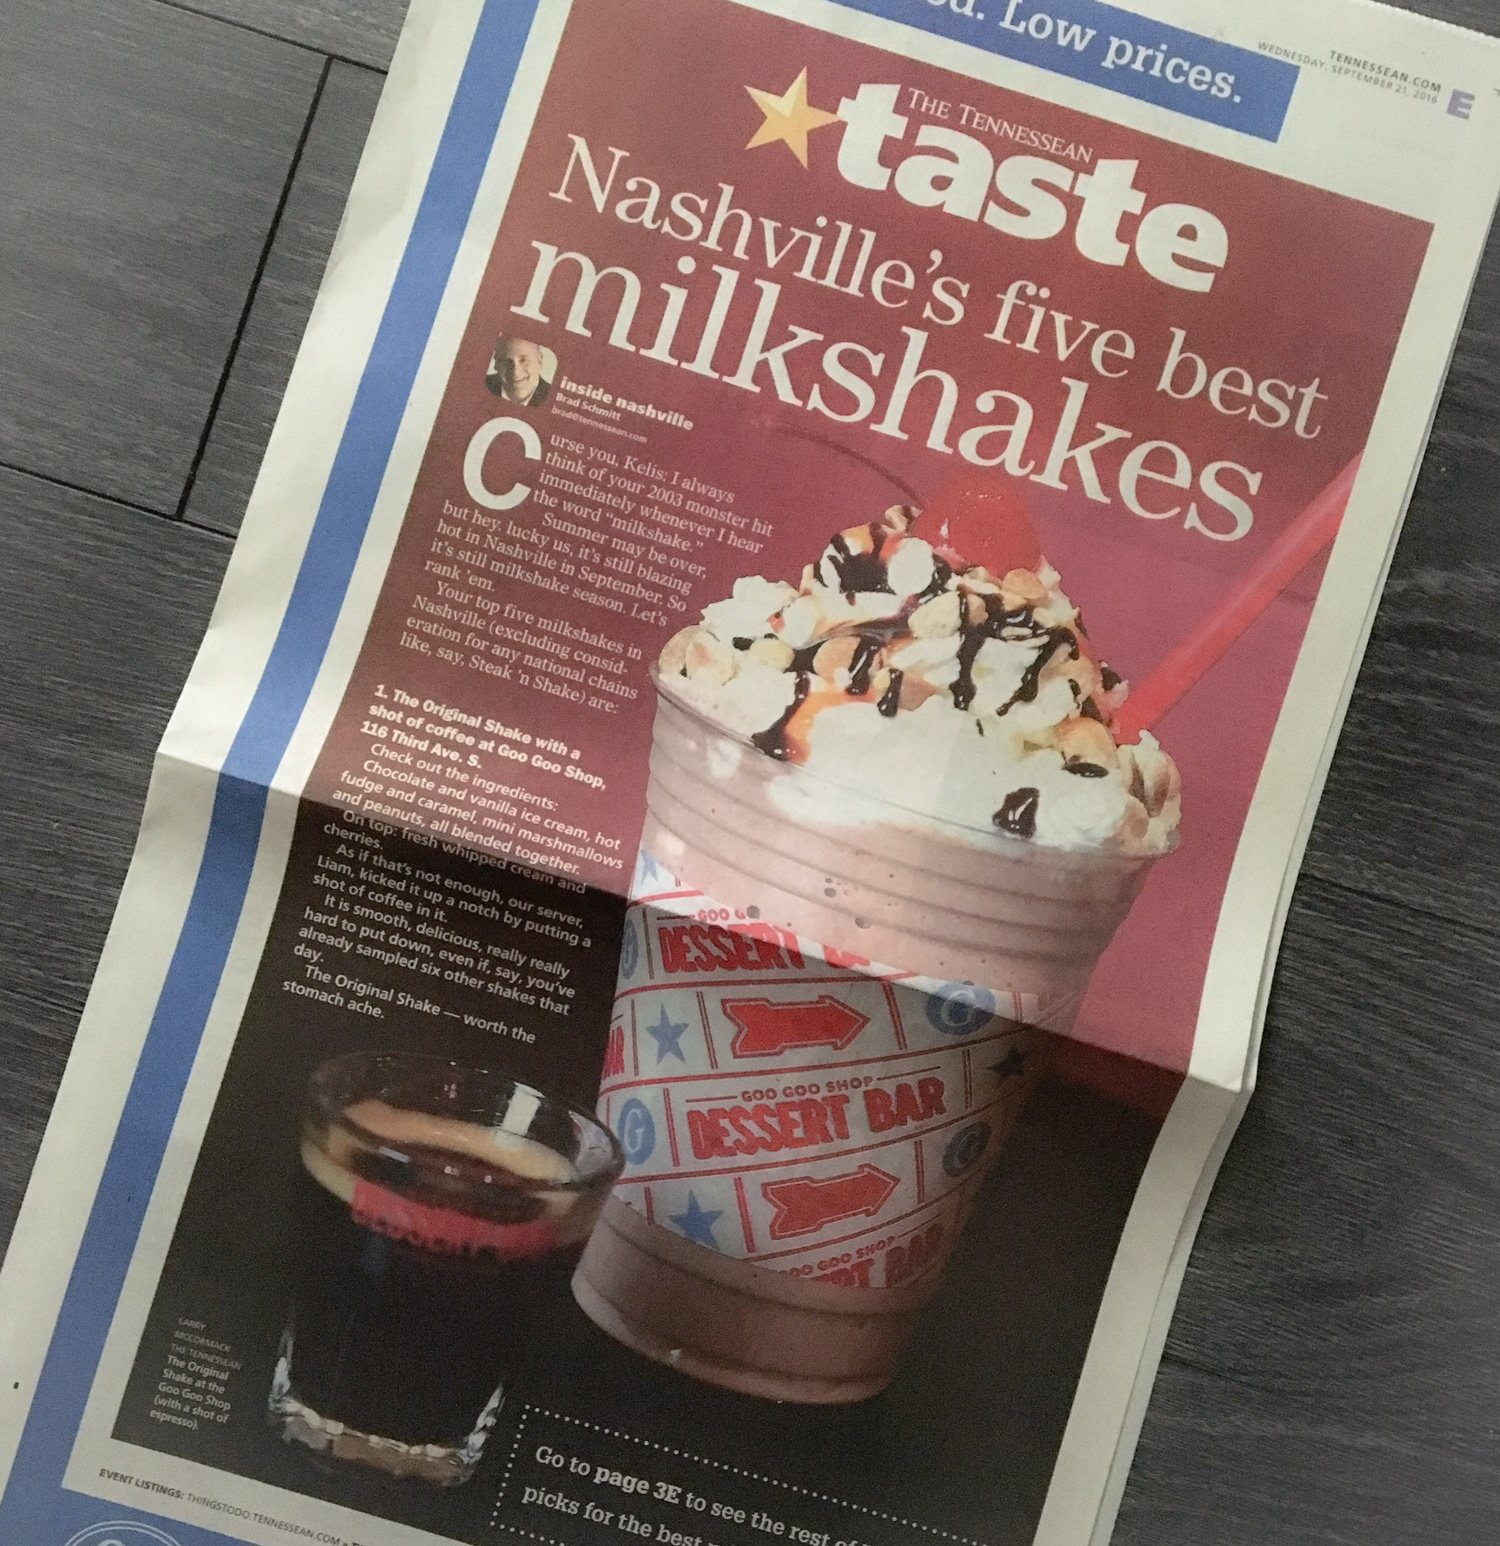 The Tennessean: Best Milkshakes in Nashville Image